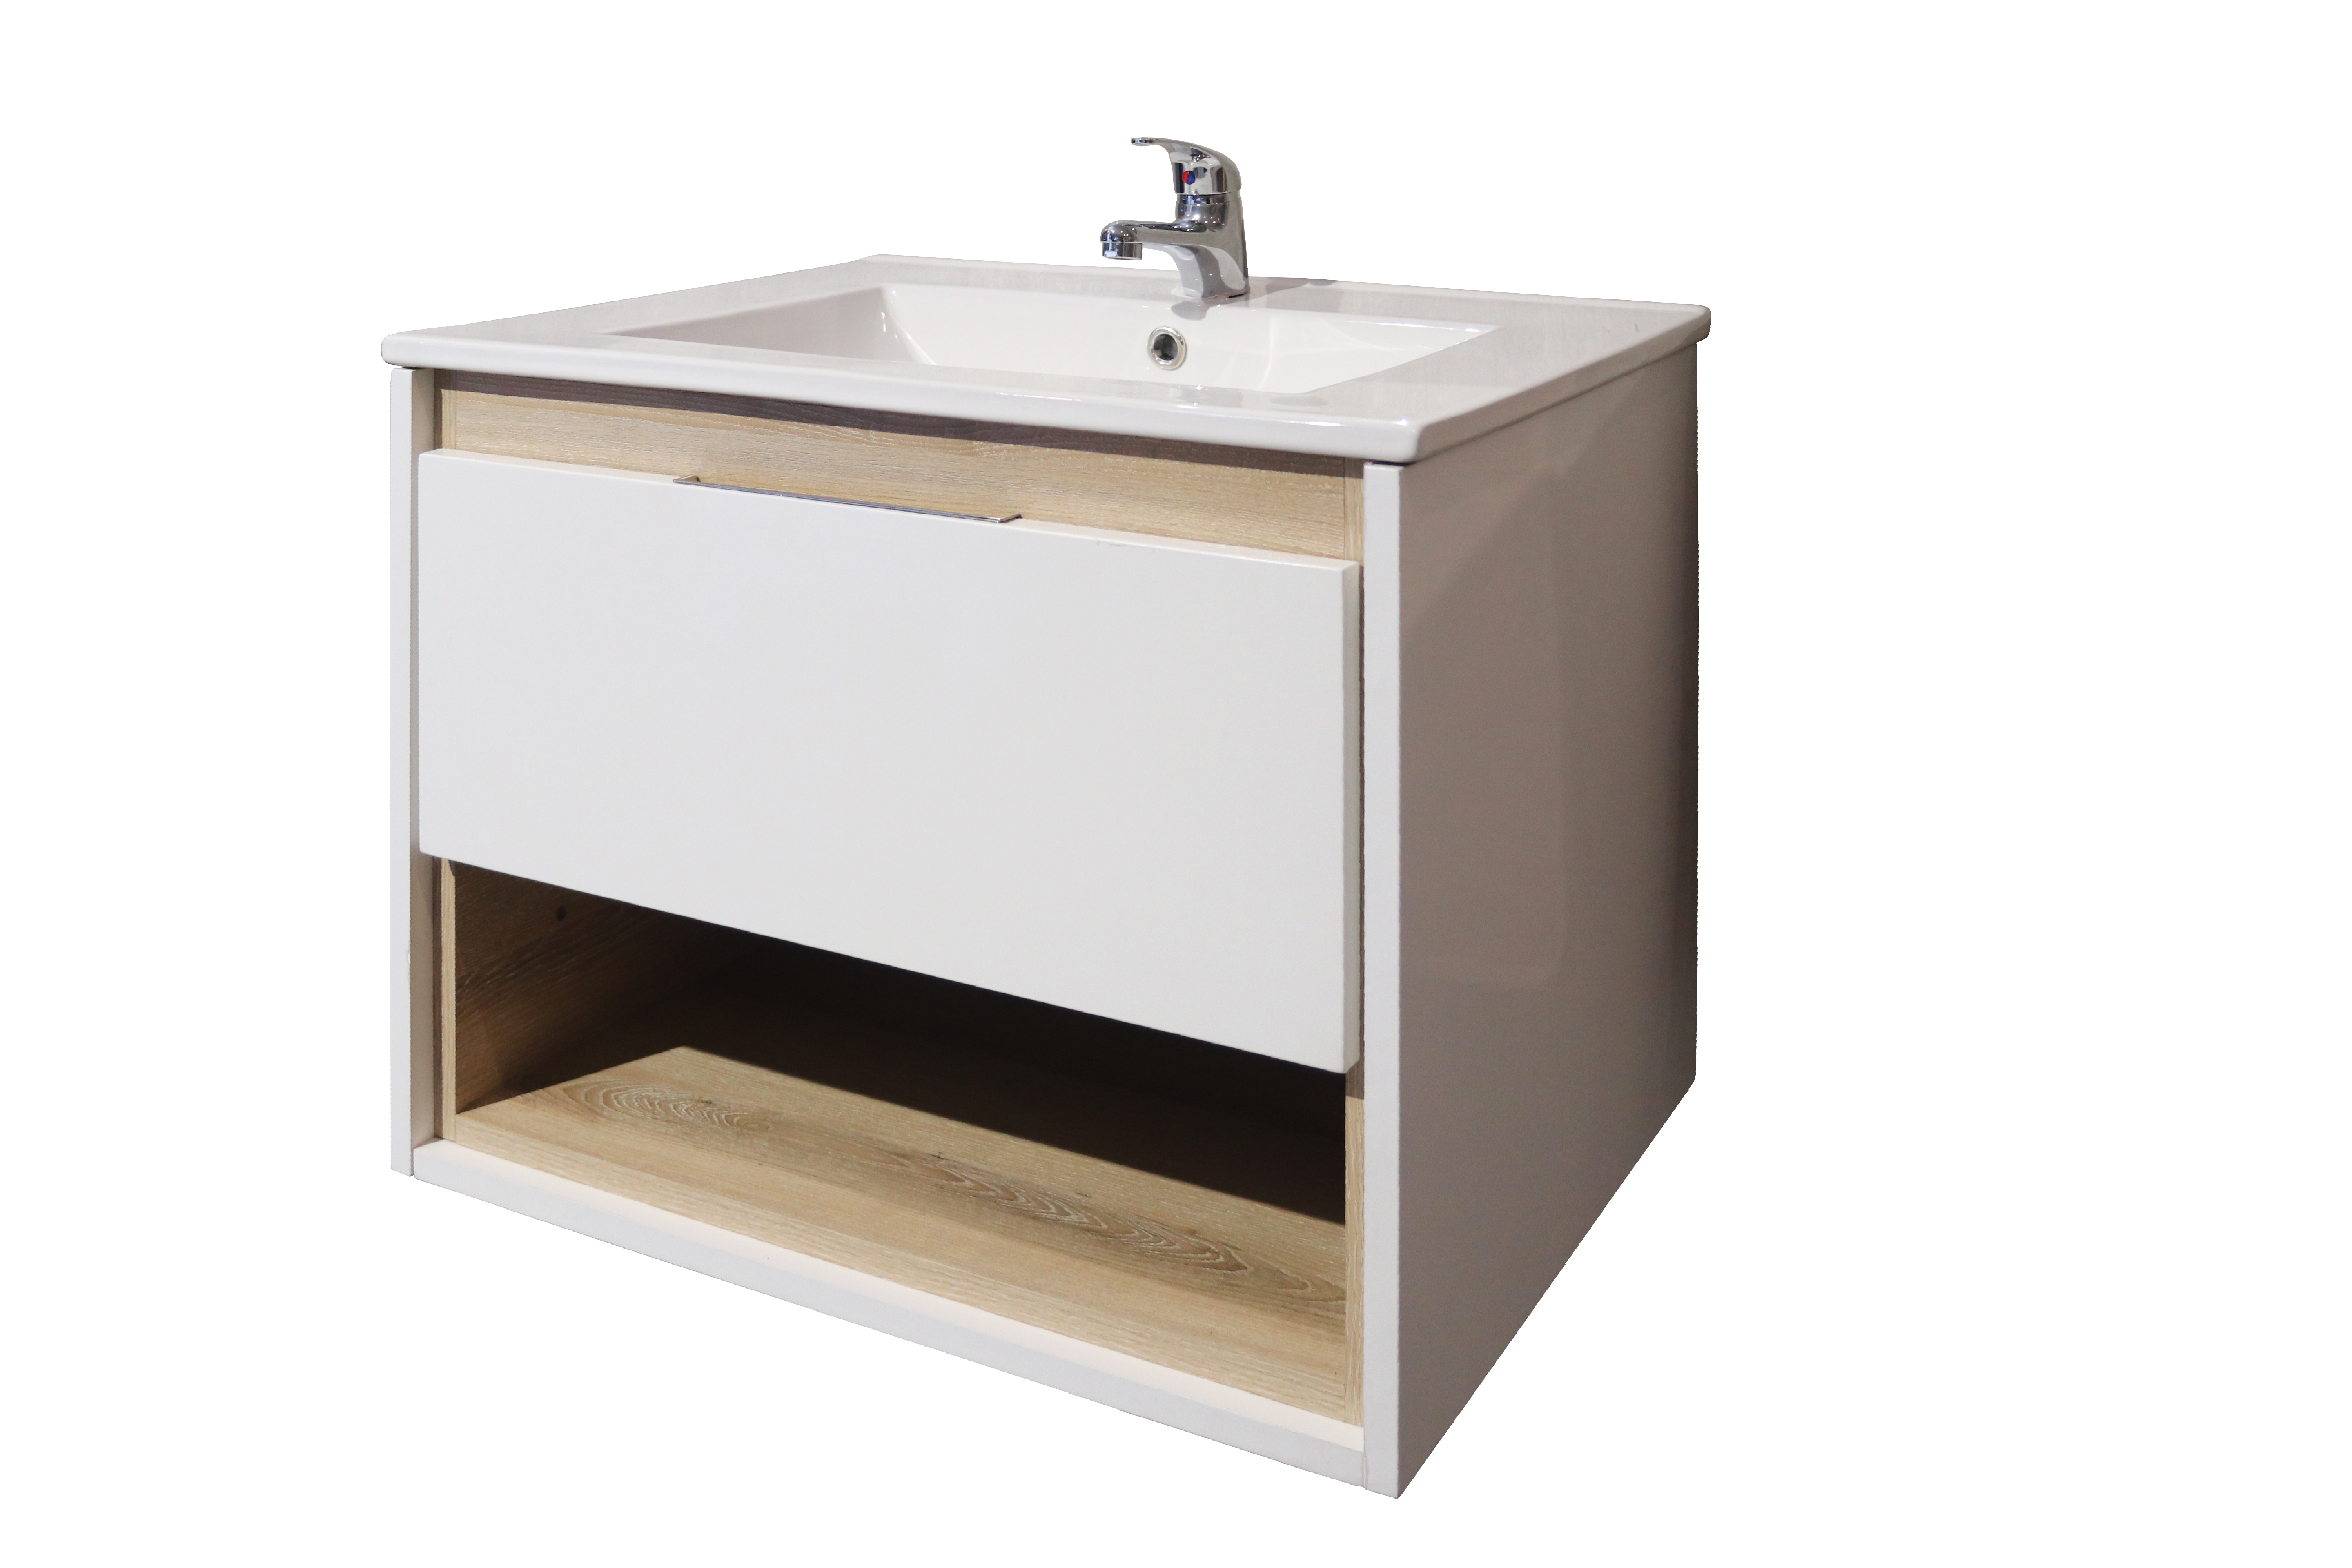 Celeste Floating Bathroom Vanity in white with washed shale accent